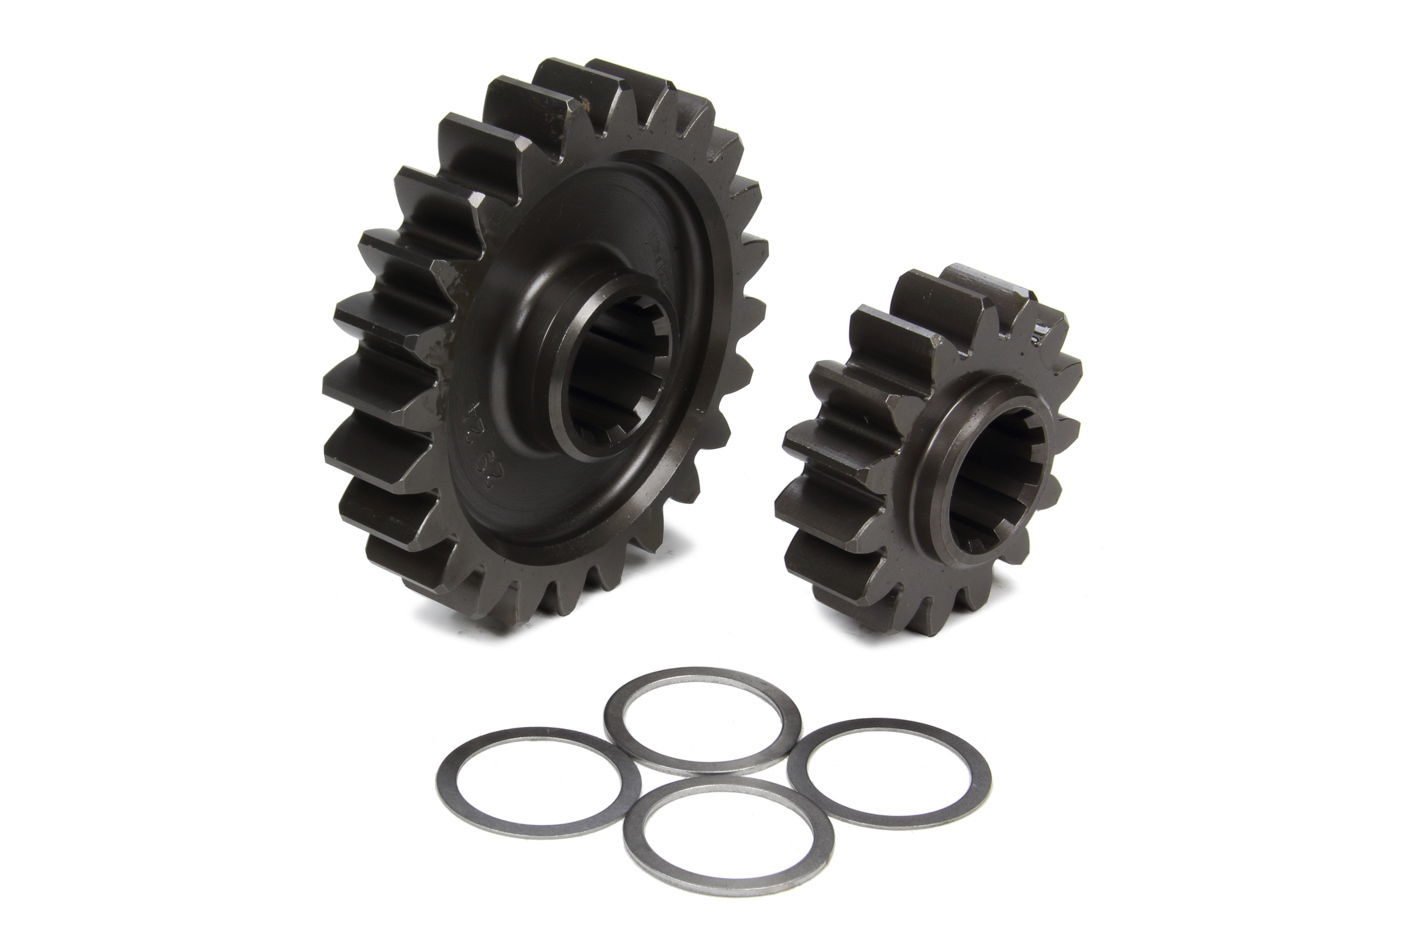 Coleman Machine 207-29 Quick Change Gear Set, Pro-Lite, Set 29, 10 Spline, 4.11 Ratio 6.58 / 2.57, 4.86 Ratio 7.77 / 3.04, Steel, Each